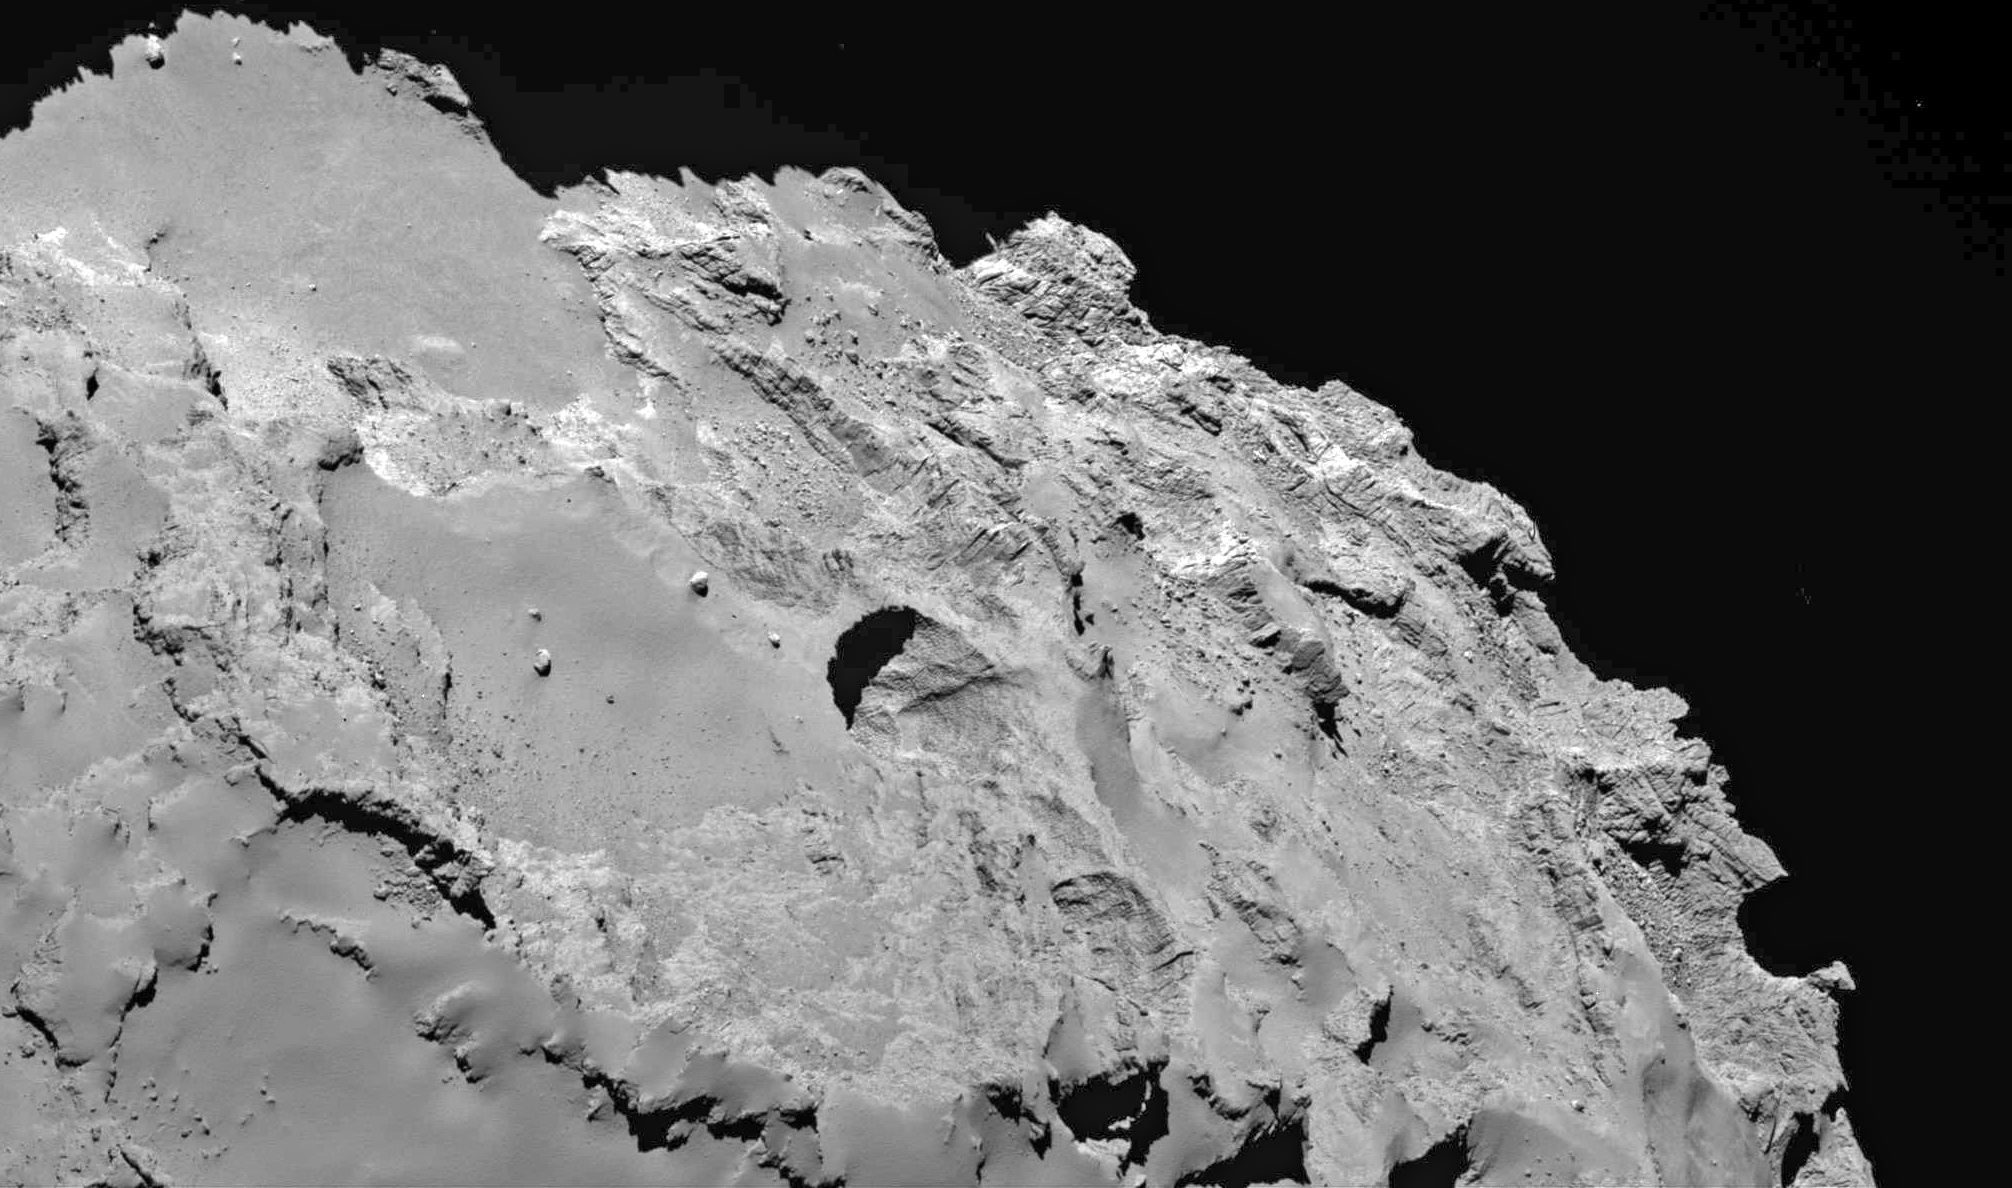 Rosetta 1 Year Later: Historic Comet Mission Still Intrigues